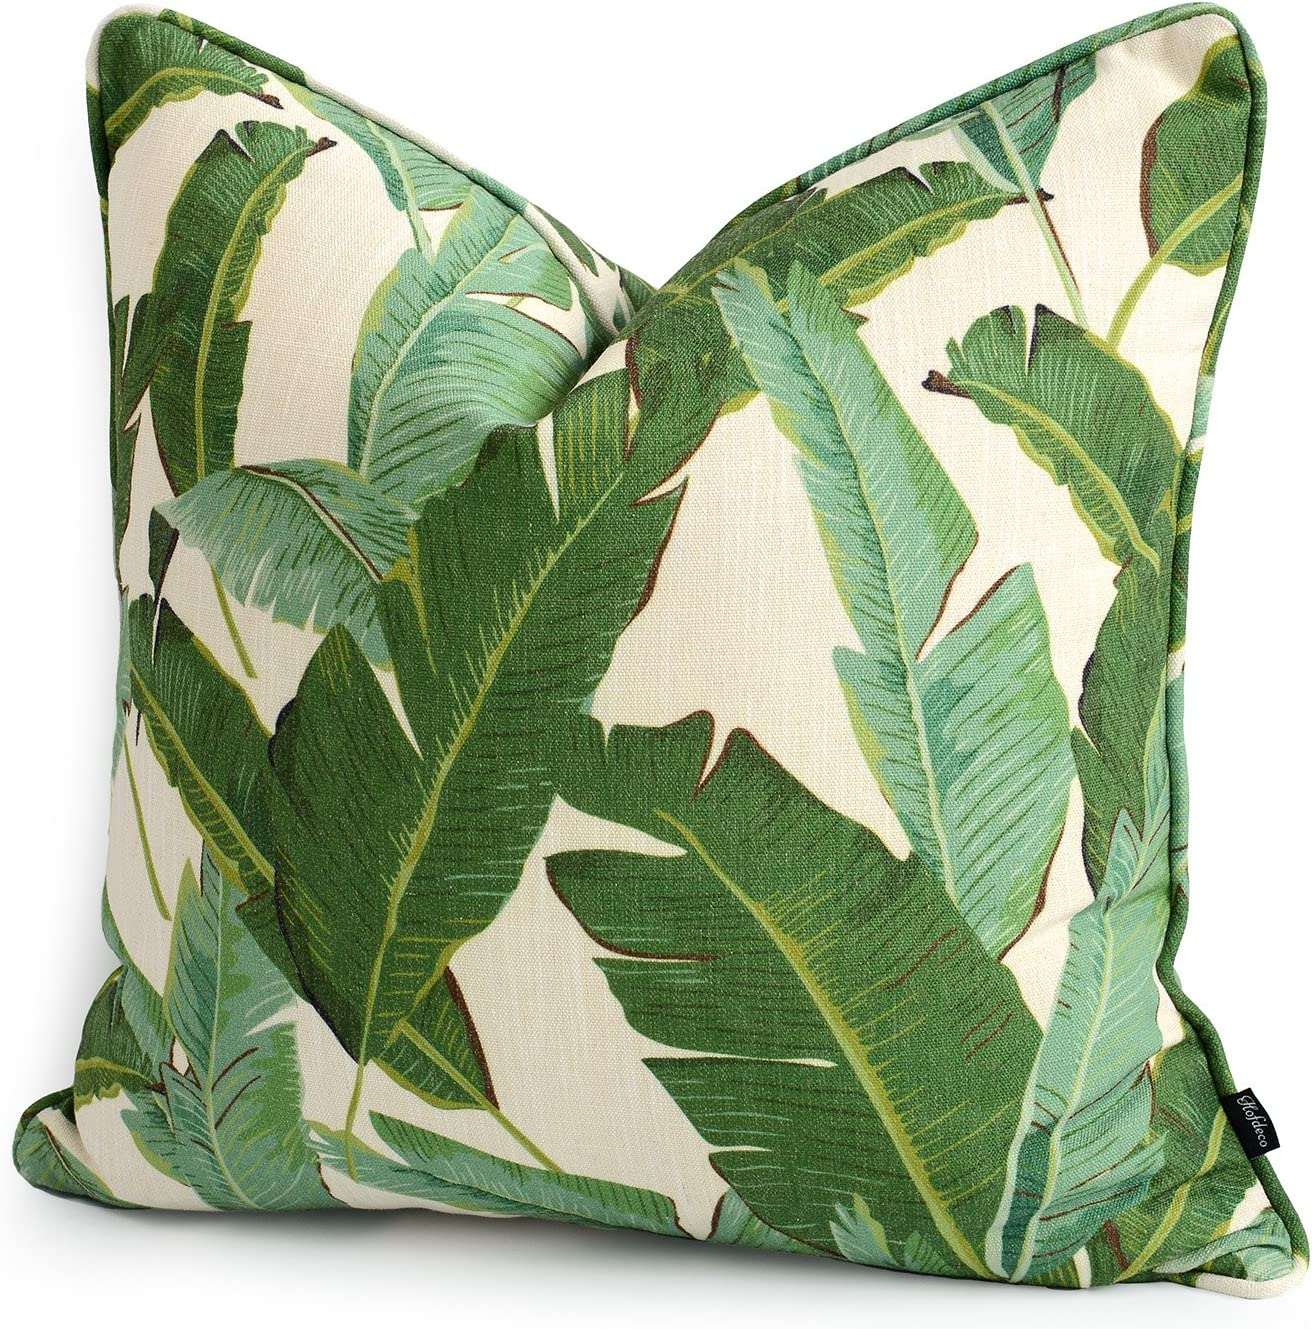 Hofdeco Premium Decorative Cushion Throw Pillow Cover HEAVY WEIGHT Cotton  Linen Modern Greenery Tropical Banana Palm Leaf 20x20 Inches 20x20cm